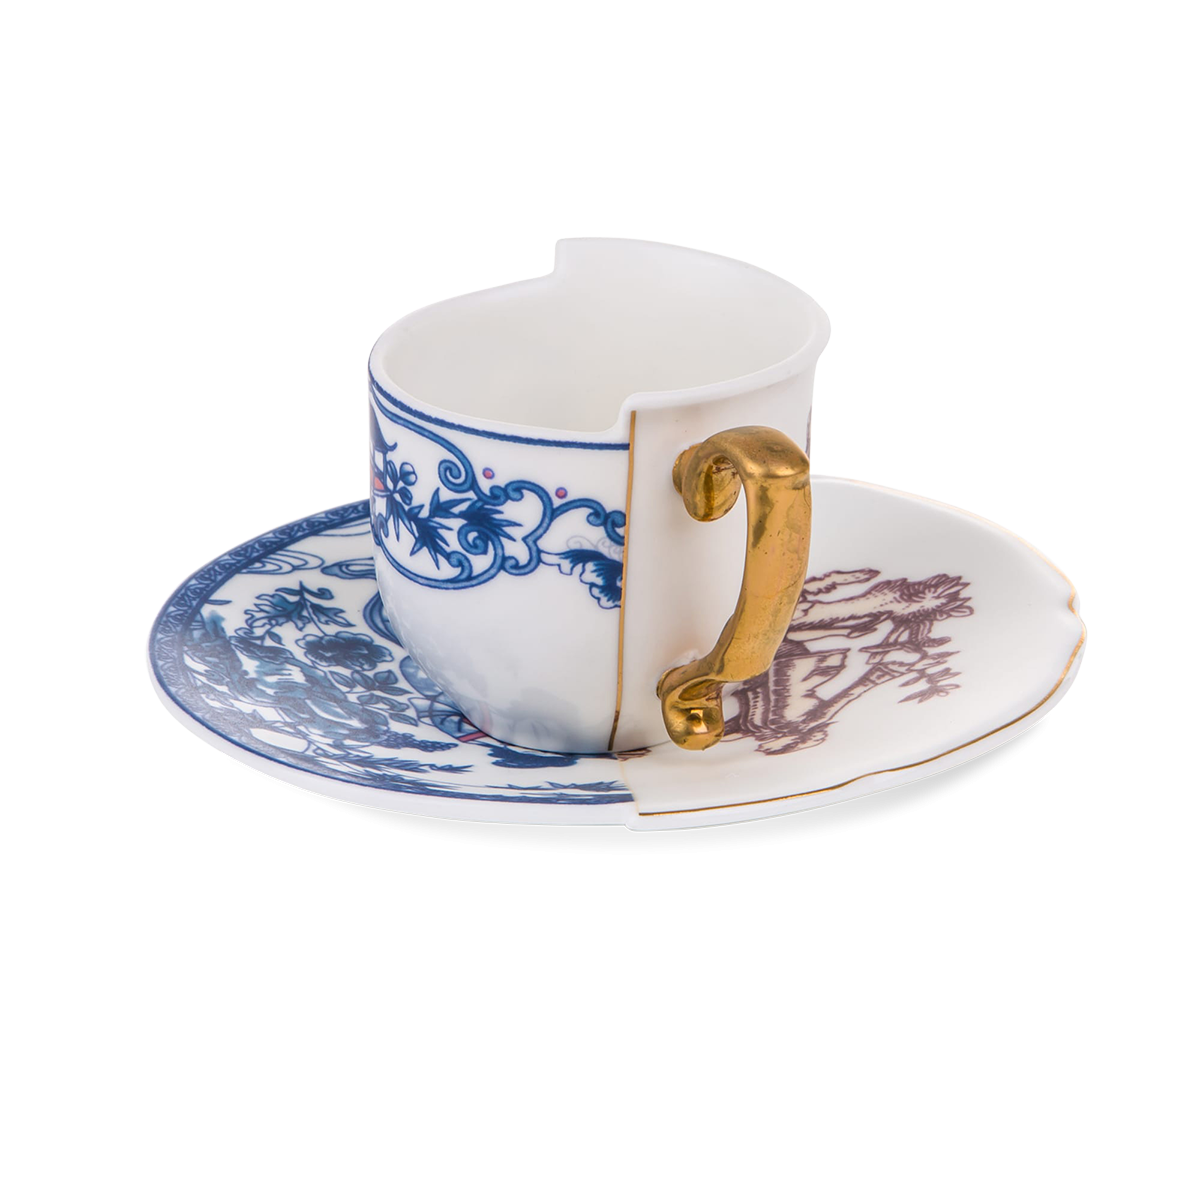 Seletti Hybrid Collection, Eufemia Coffee Cup & Saucer-0